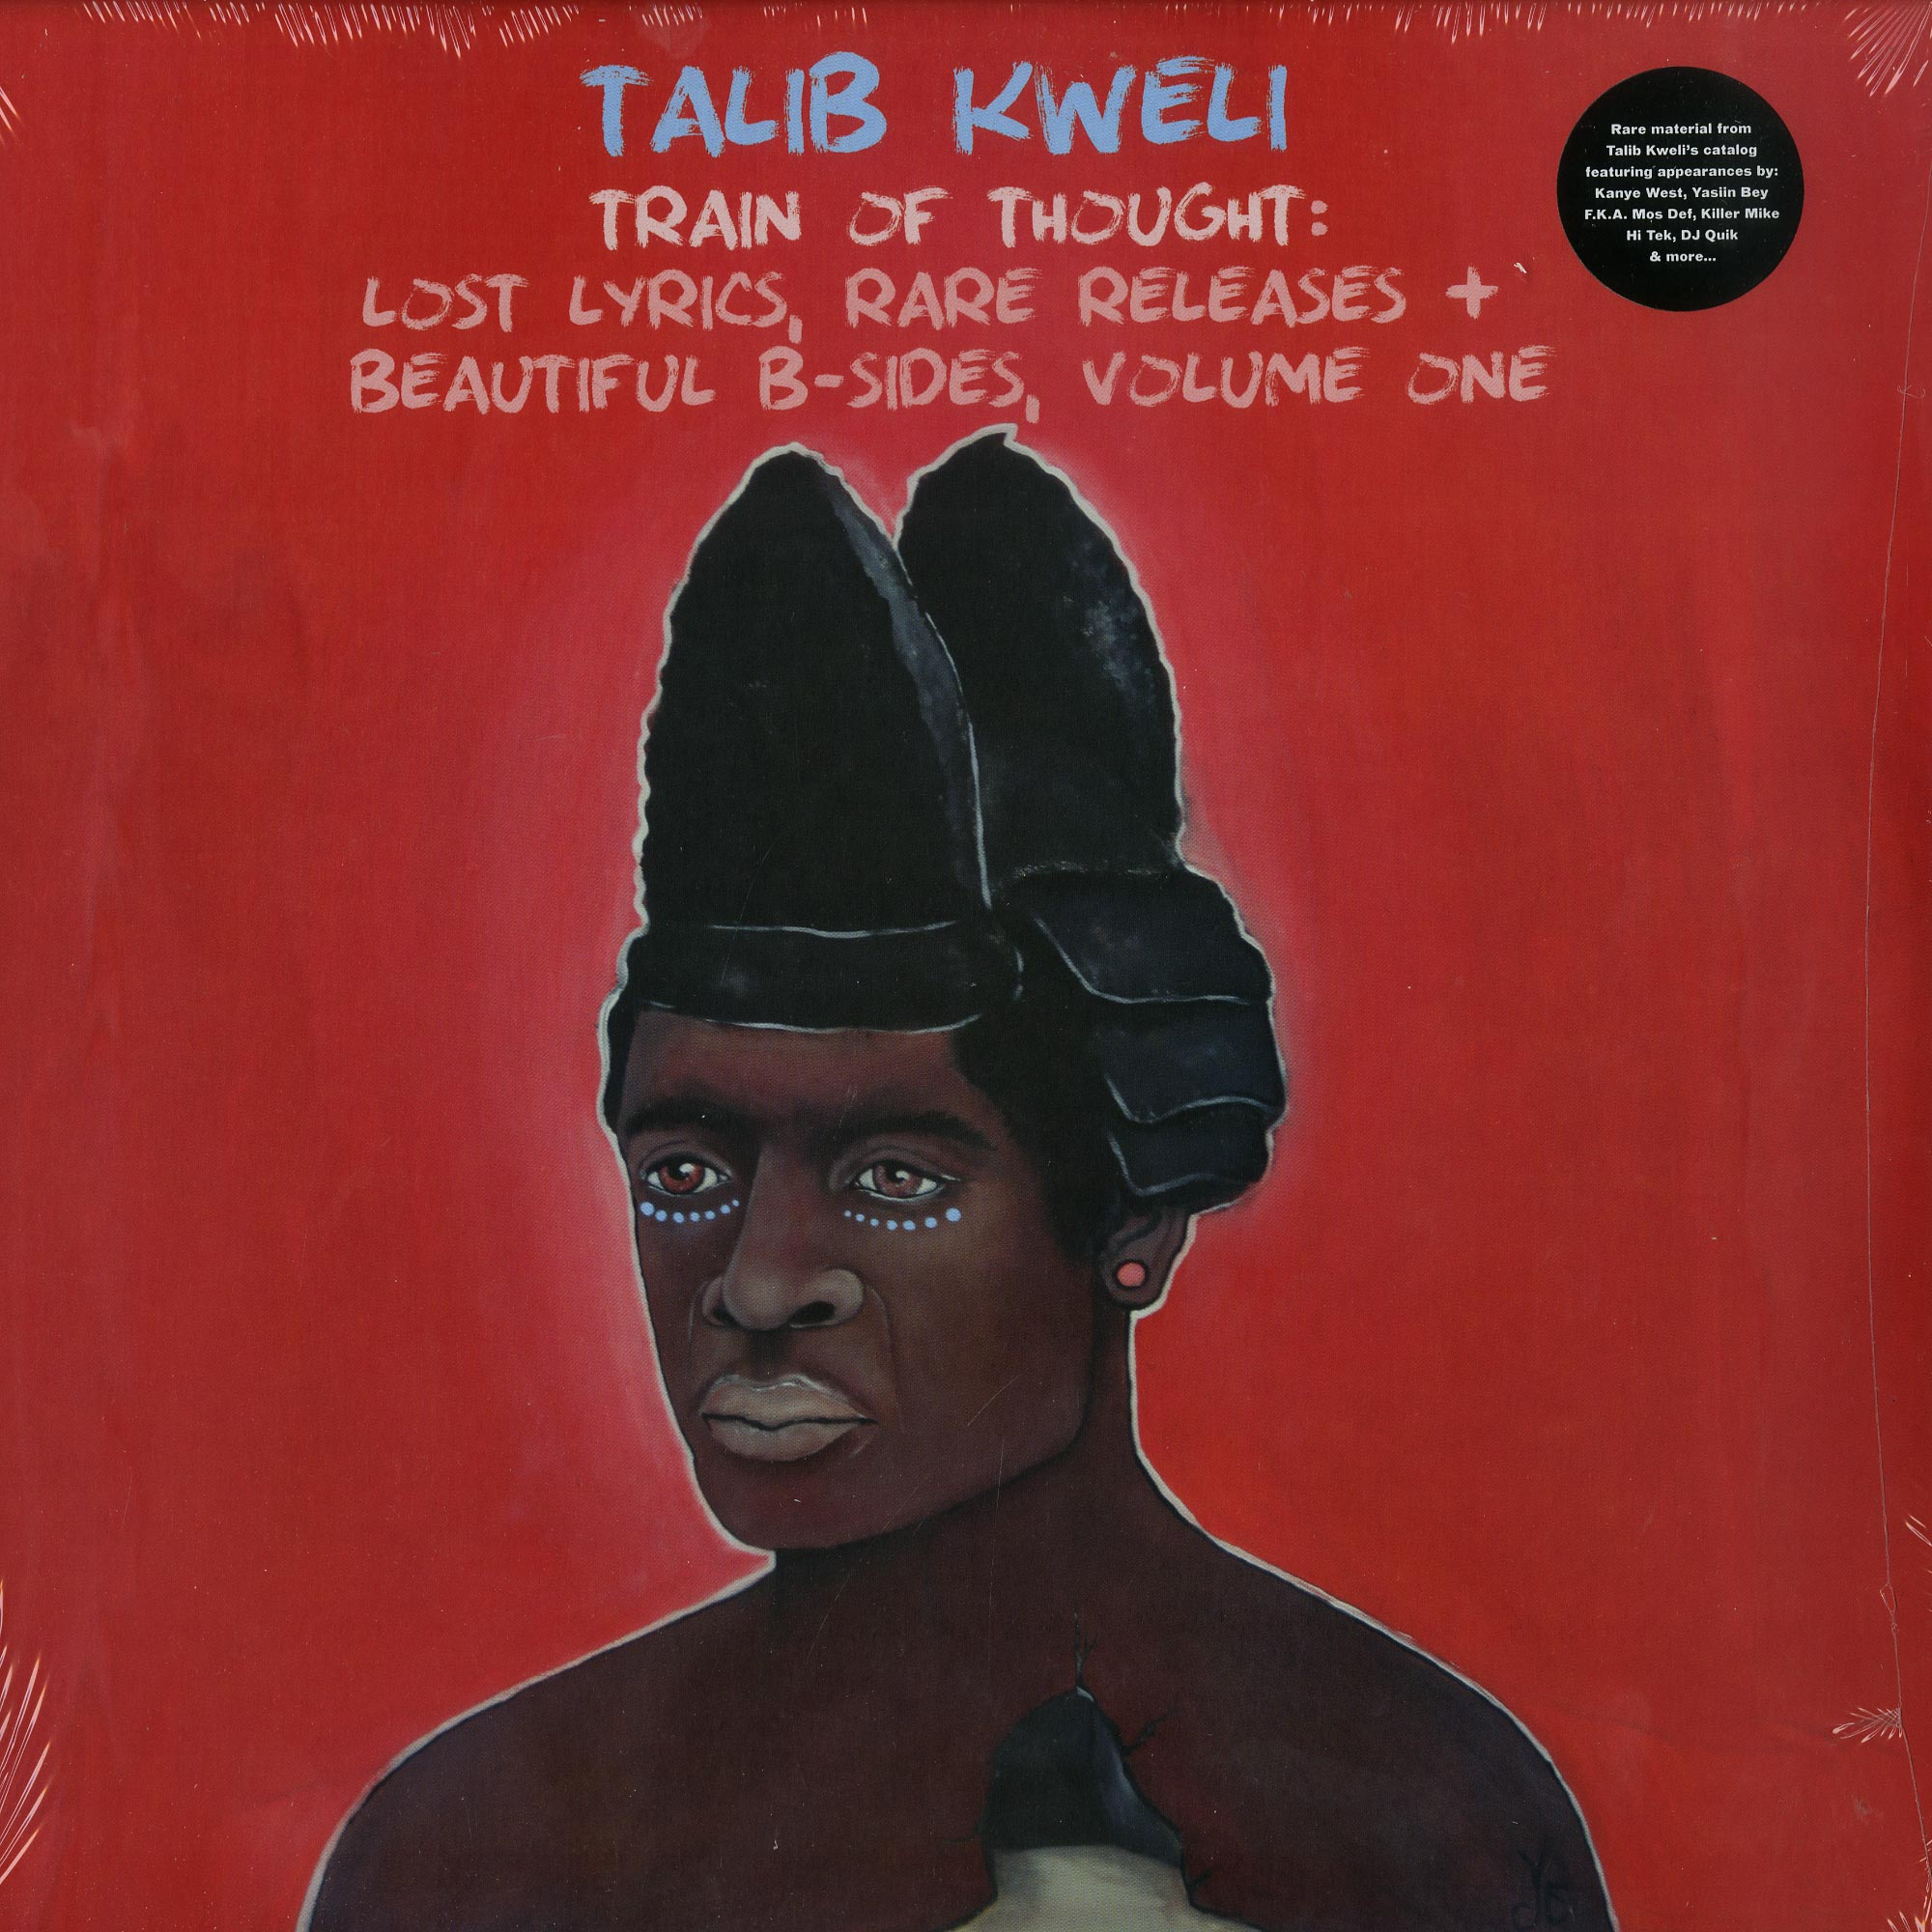 Talib Kweli - LOST LYRICS. RARE RELEASES & BEAUTIFUL B-SIDES VOL. 1